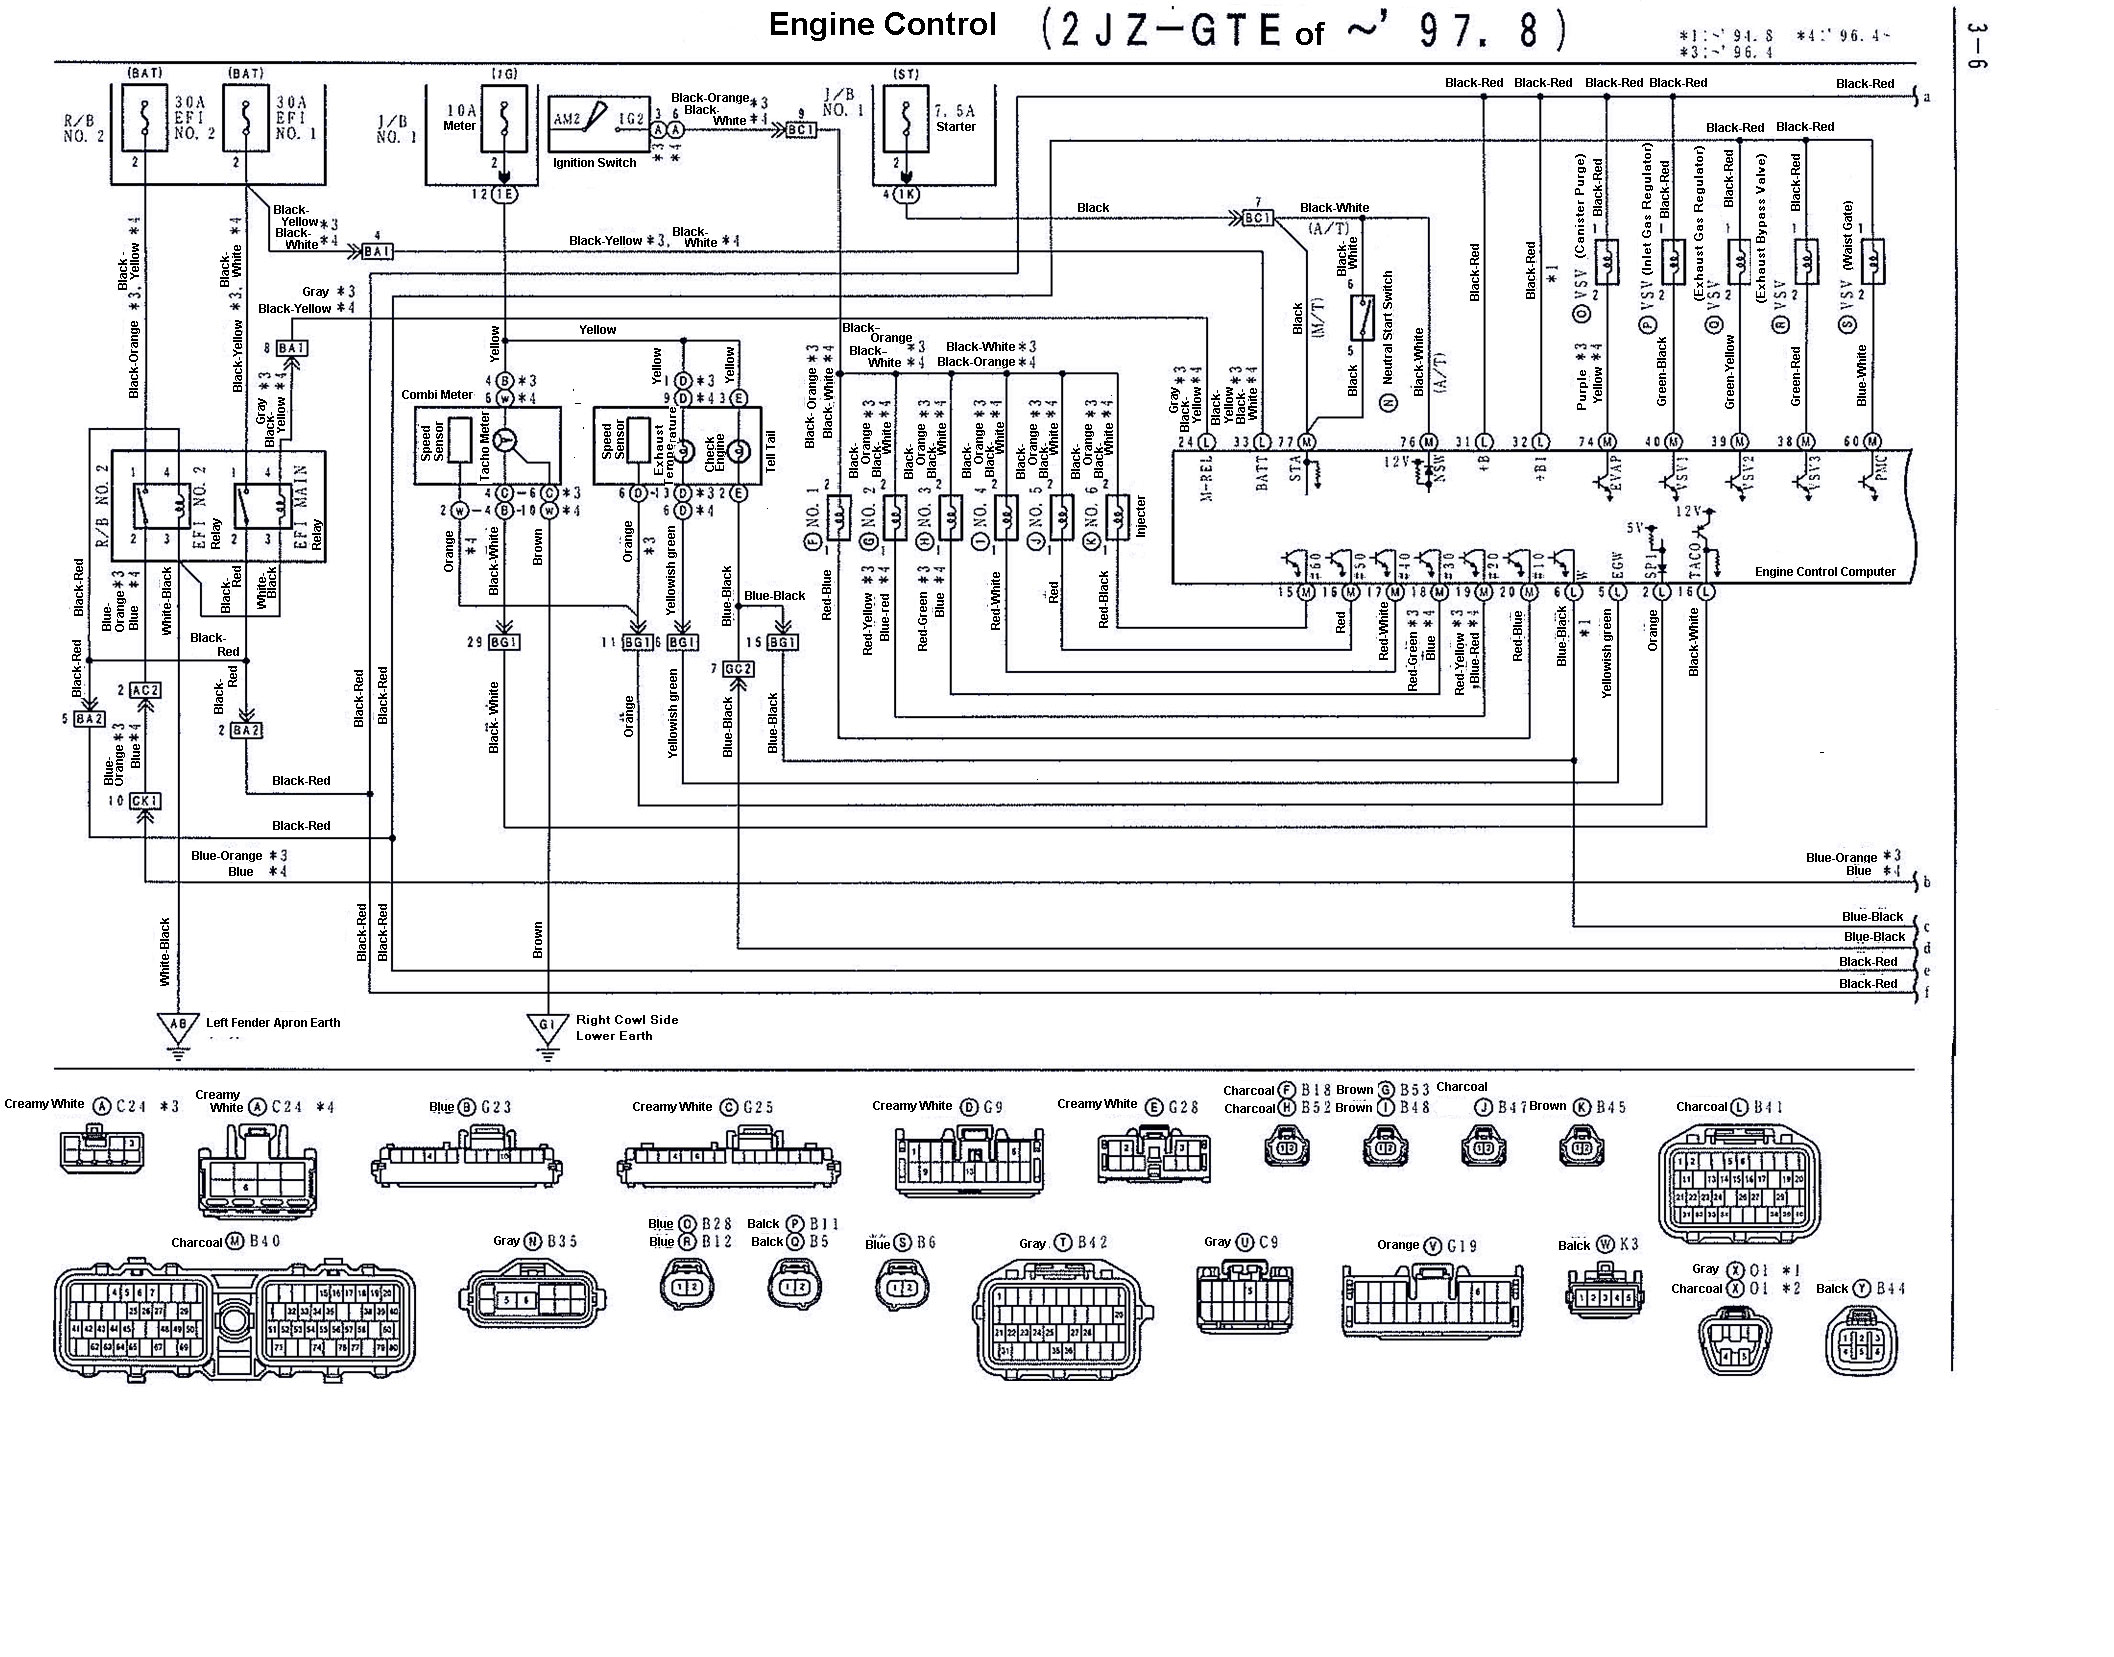 final3.6 supra 2jzgte vvti wiring diagrams (97 8 02) 2jzgarage 2jz wiring diagram at gsmportal.co